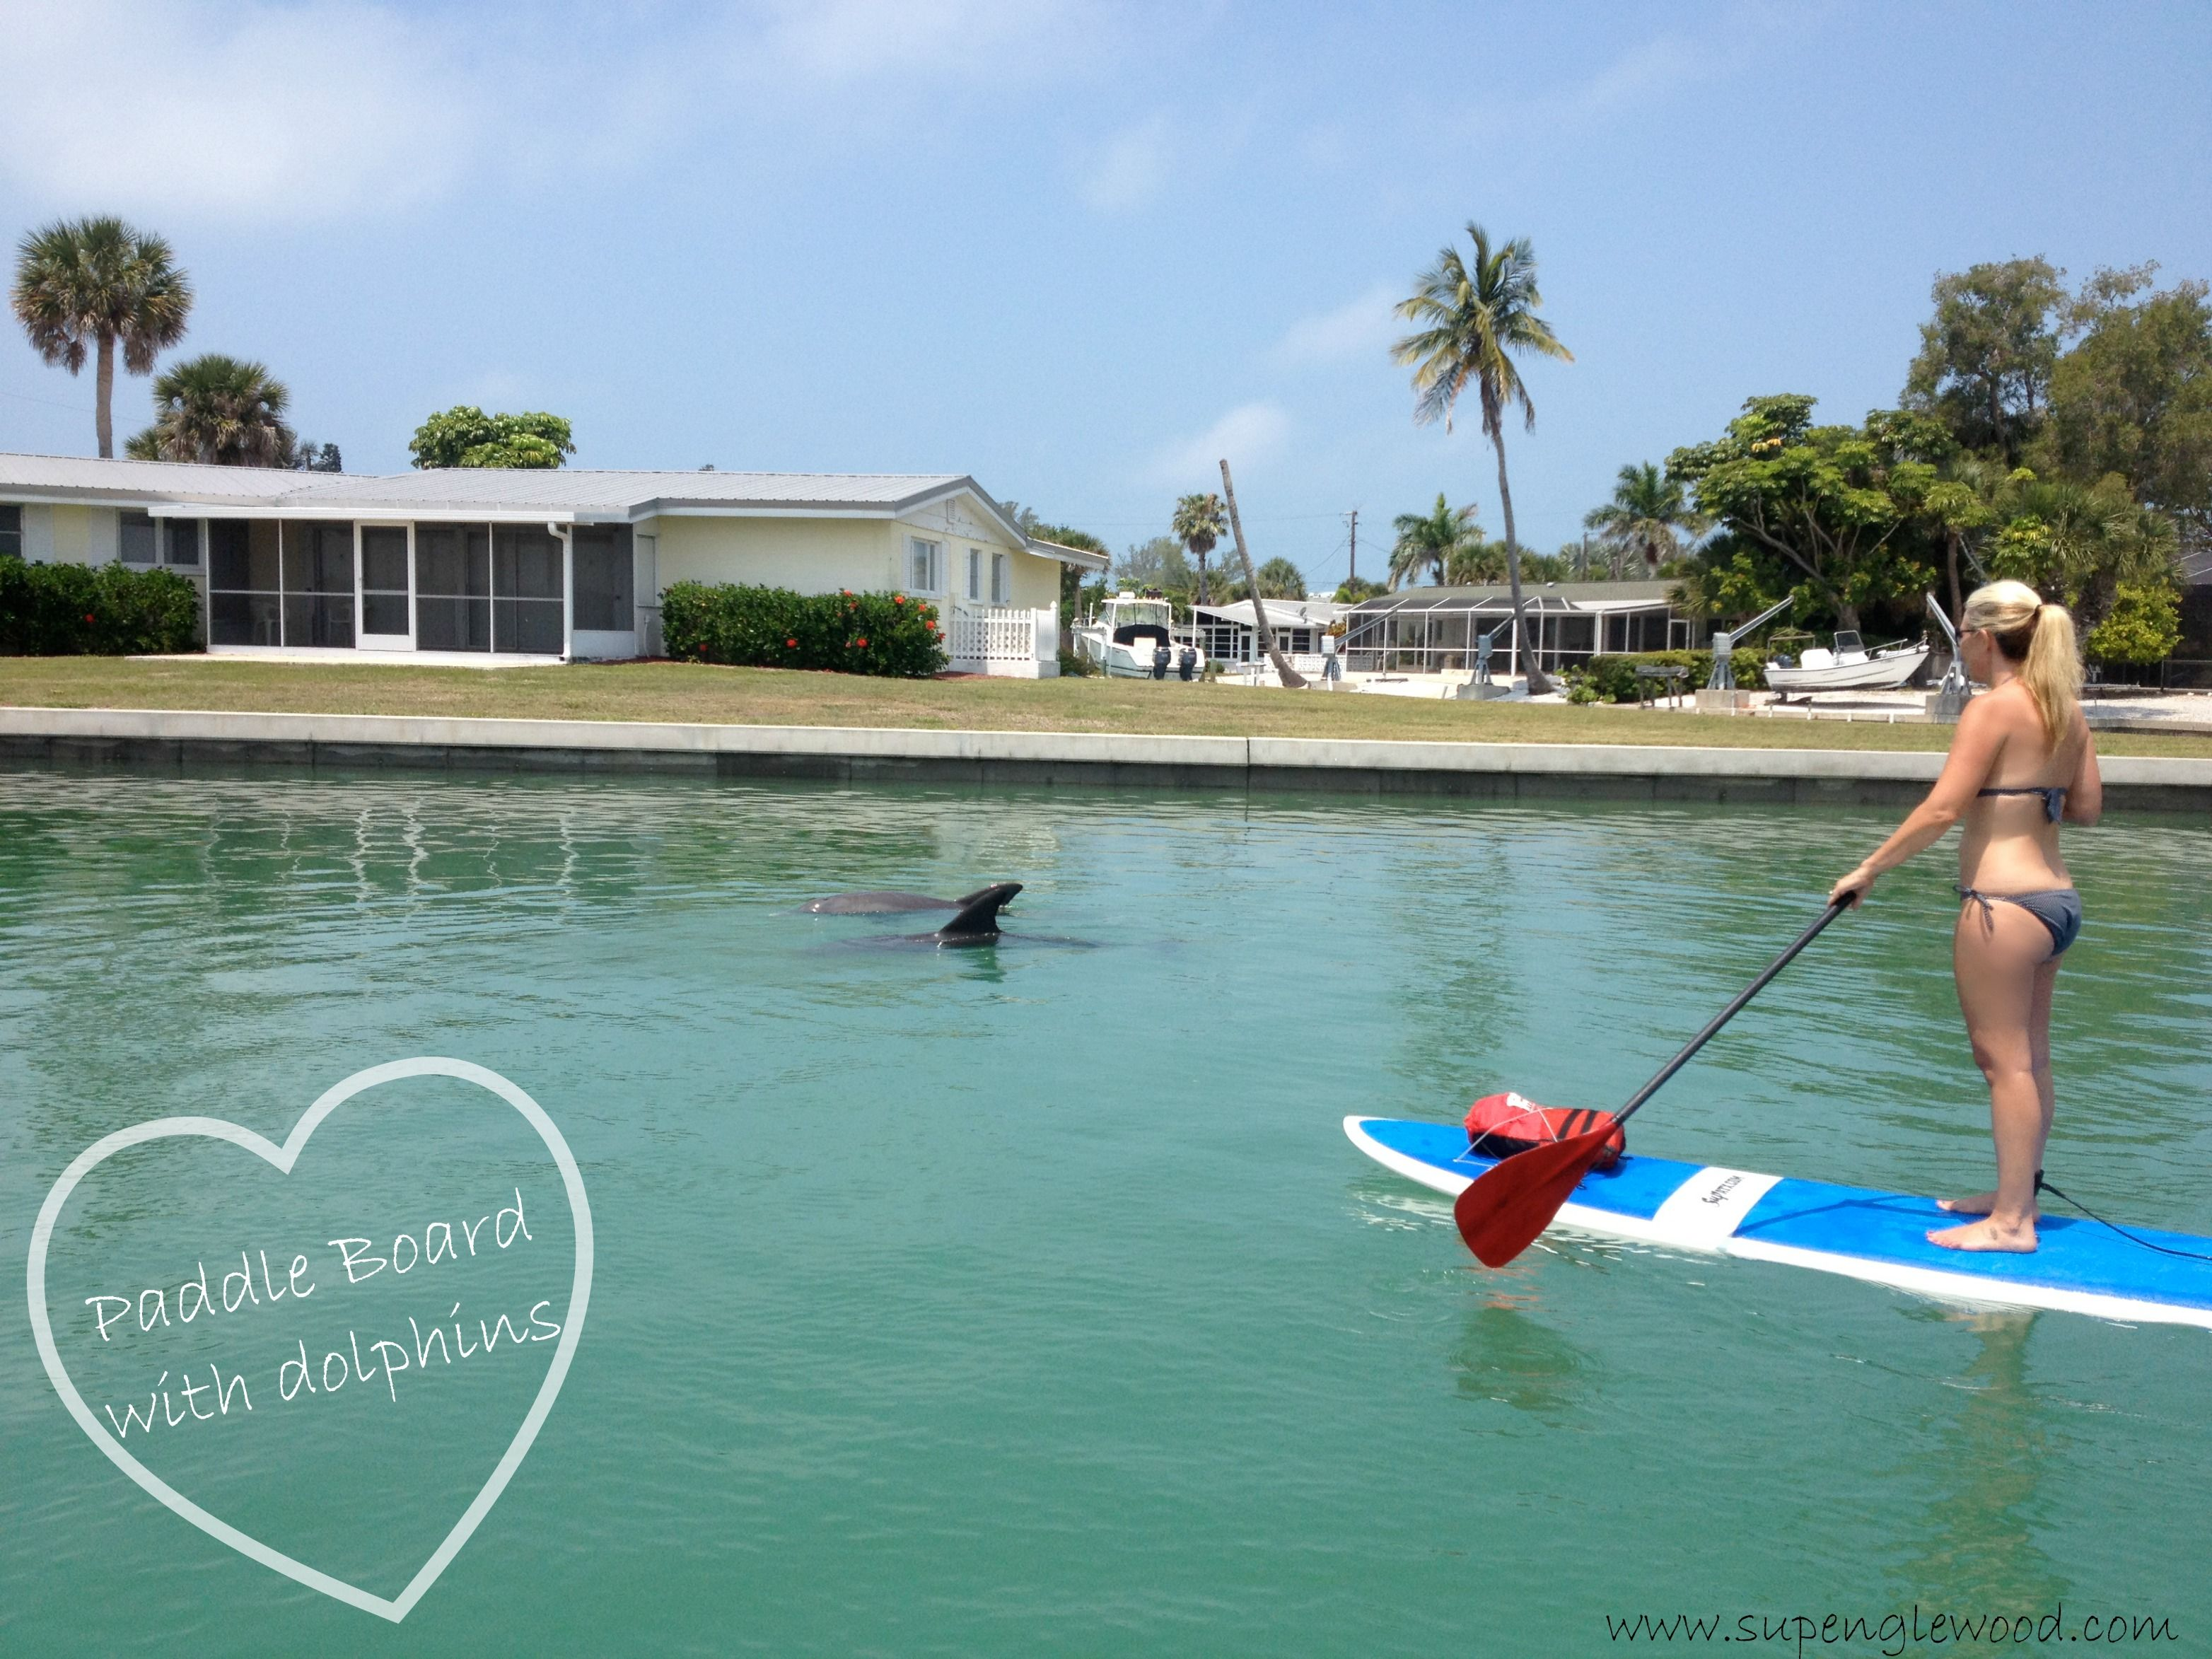 Paddleboard With Dolphins In Their Natural Habitat At